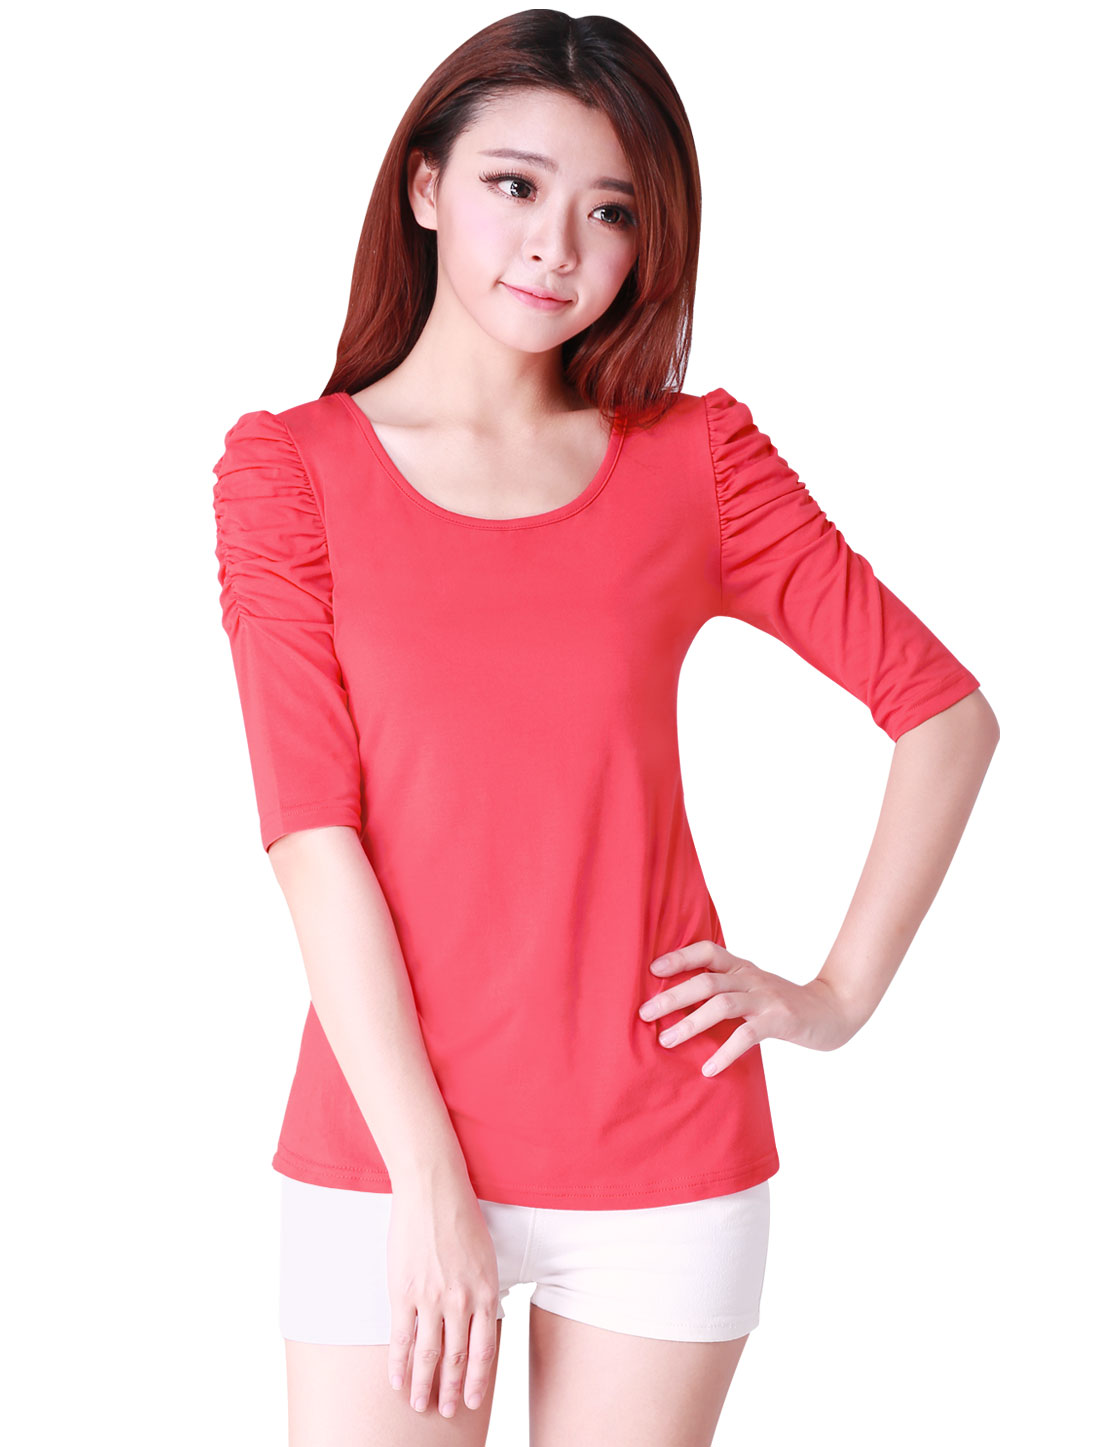 Woman Chic Scoop Neck 1/2 Sleeve Design Watermelon Red T-Shirt S